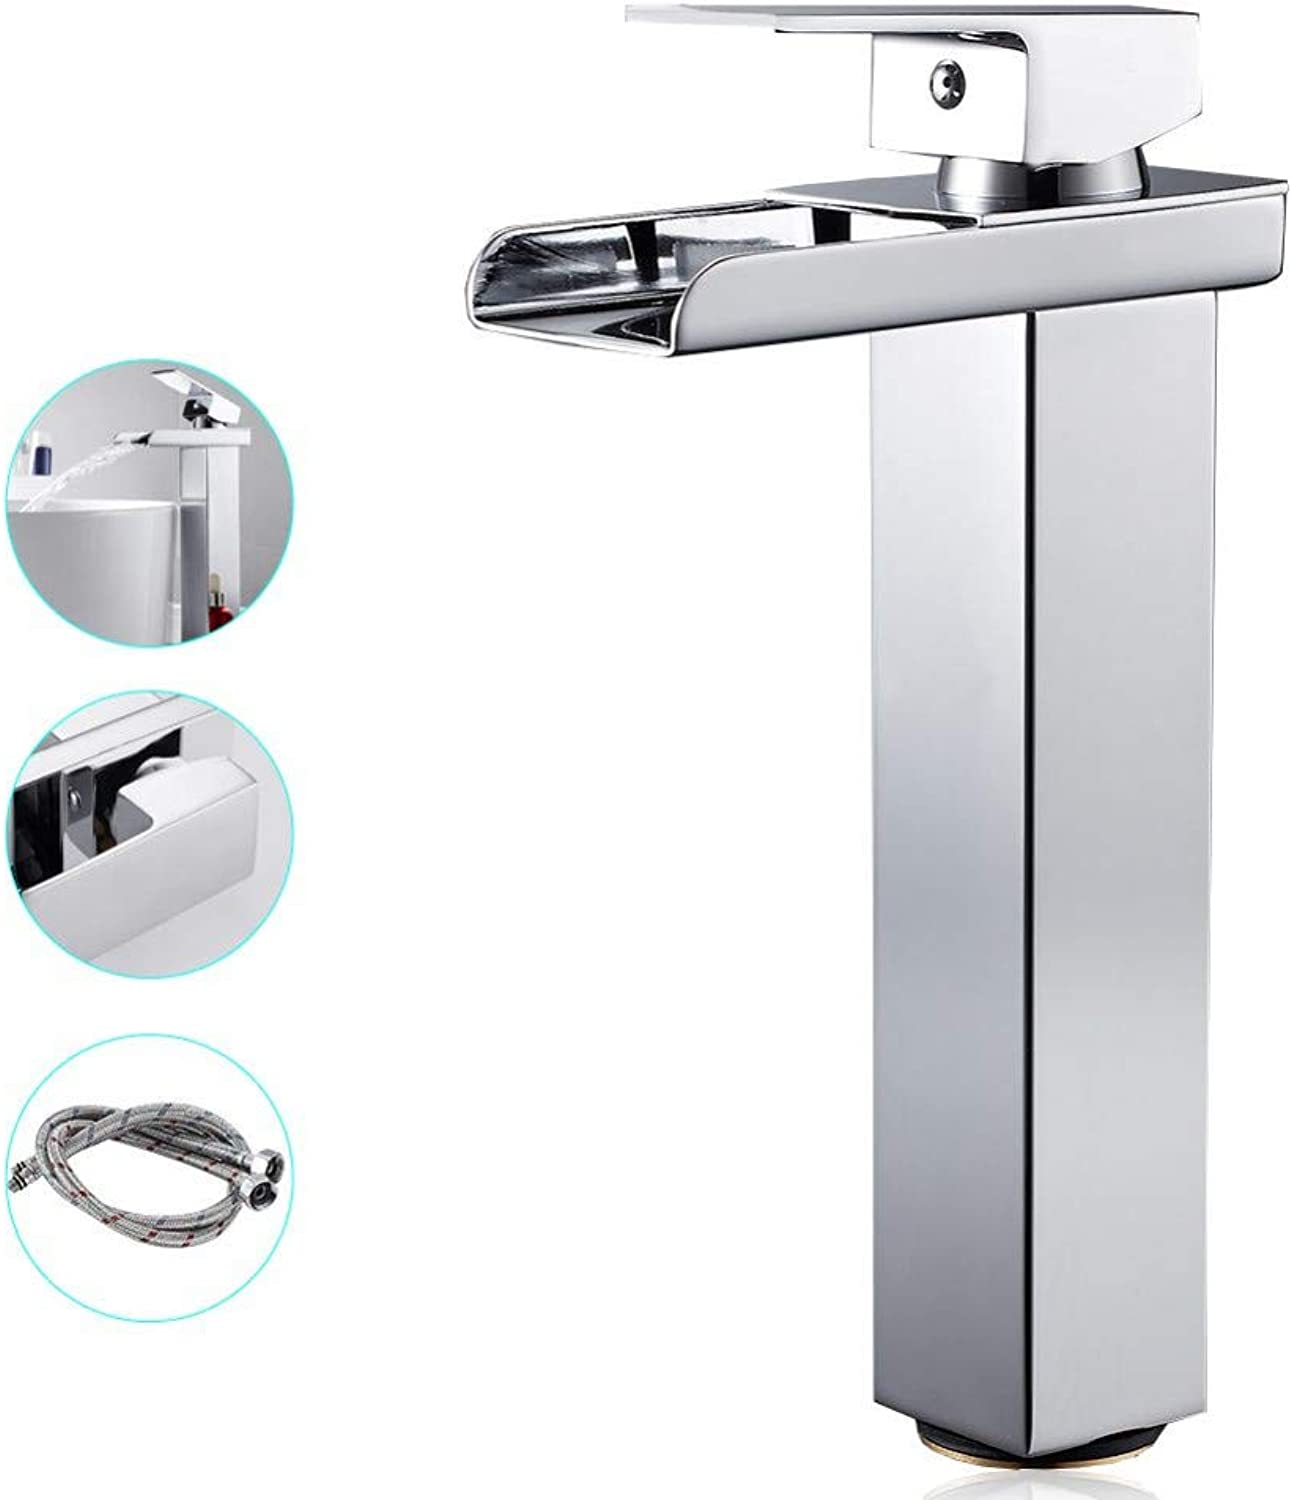 ZHFJGKR&ZL Basin Faucet Mixer Taps Bathroom Sink Tall Single Lever Chrome Waterfall Bathroom Wash Faucet Sinks Cold And Hot Water.with hose size 1.2